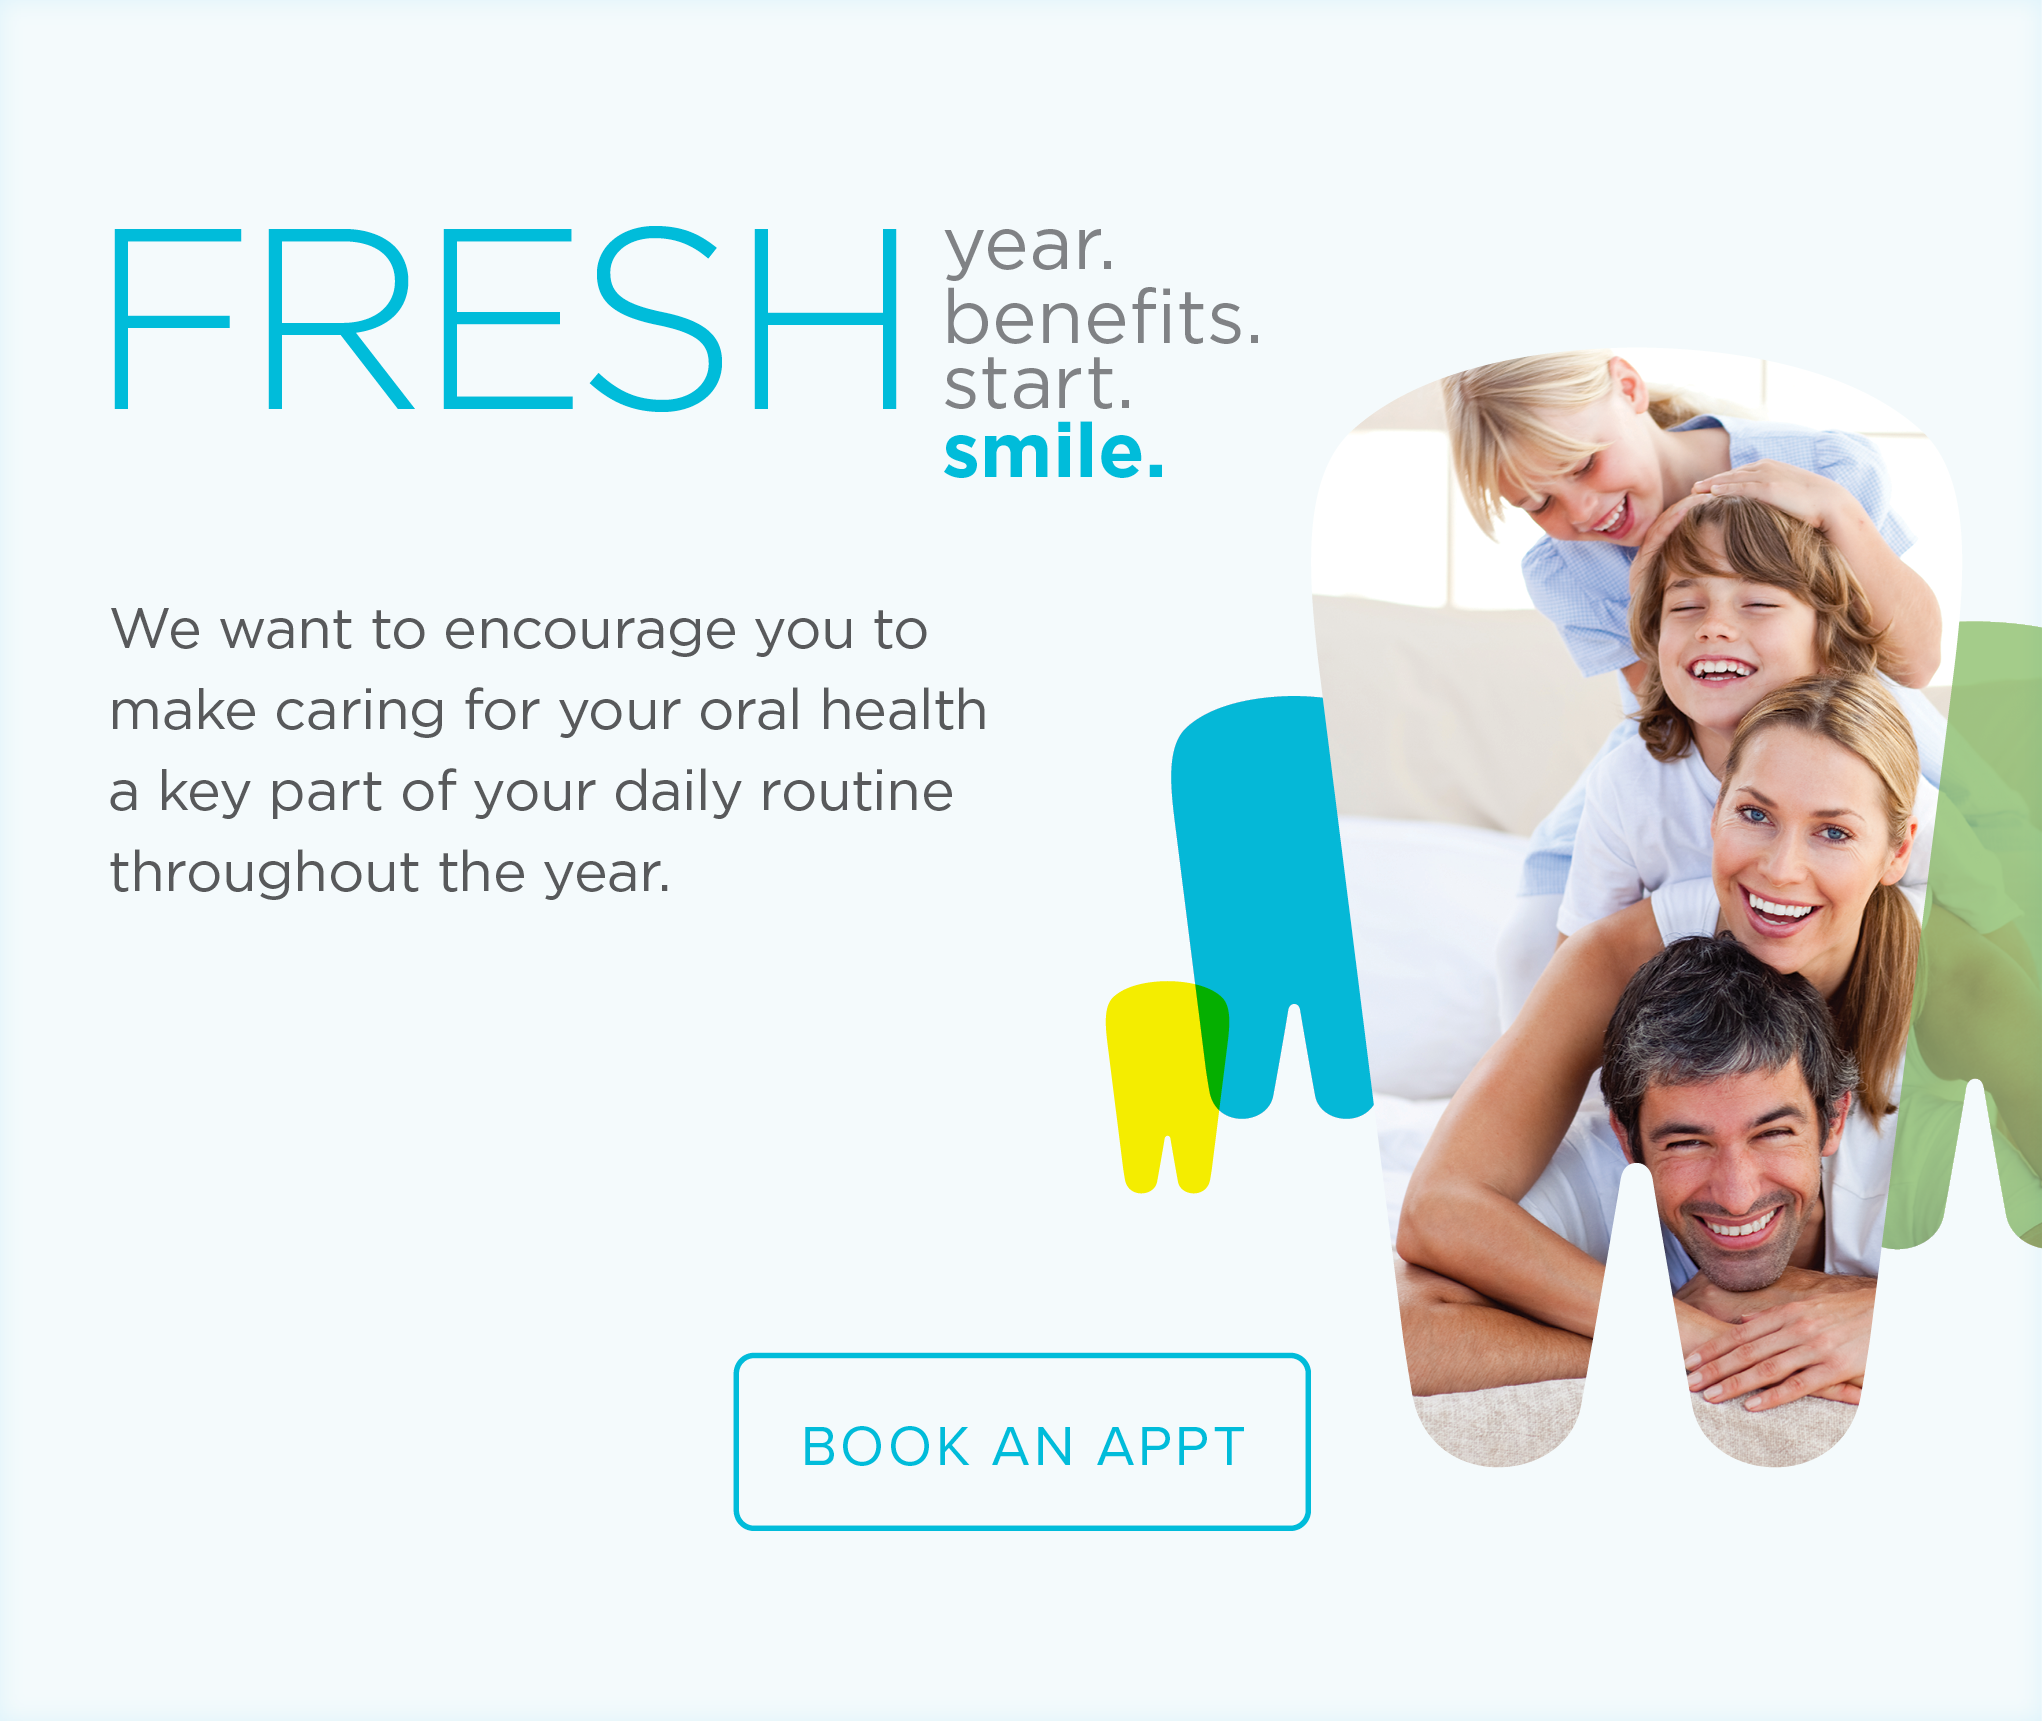 Montecito Town Center Dental Group and Orthodontics - Make the Most of Your Benefits